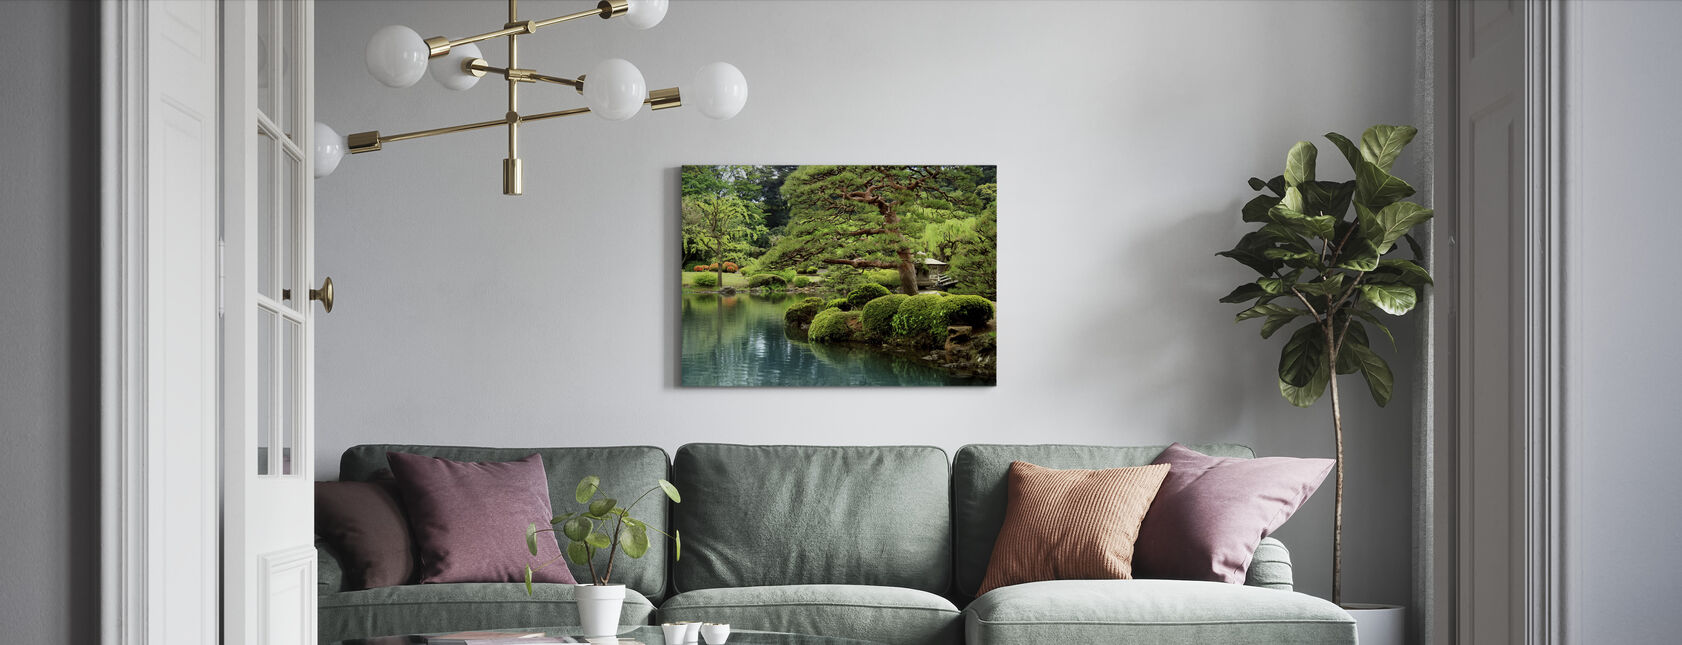 Kalm Zen Lake en Bonsai bomen in Tokio Garden - Canvas print - Woonkamer